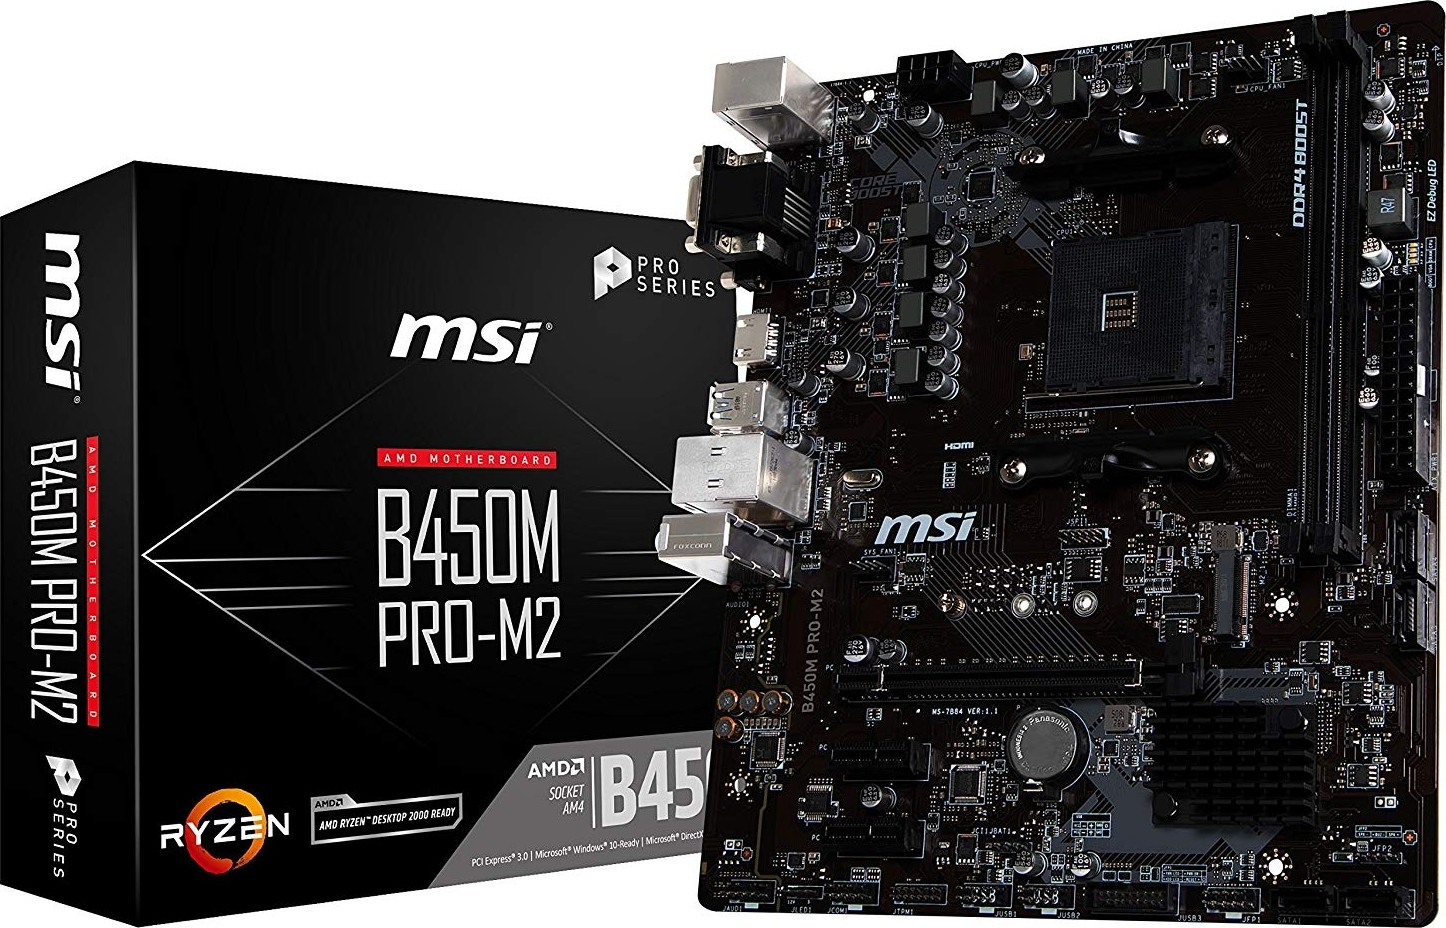 msi b450m pro m2 am4 amd ryzen 1st and 2nd generation amd b450 sata 6gb s micro atx motherboard